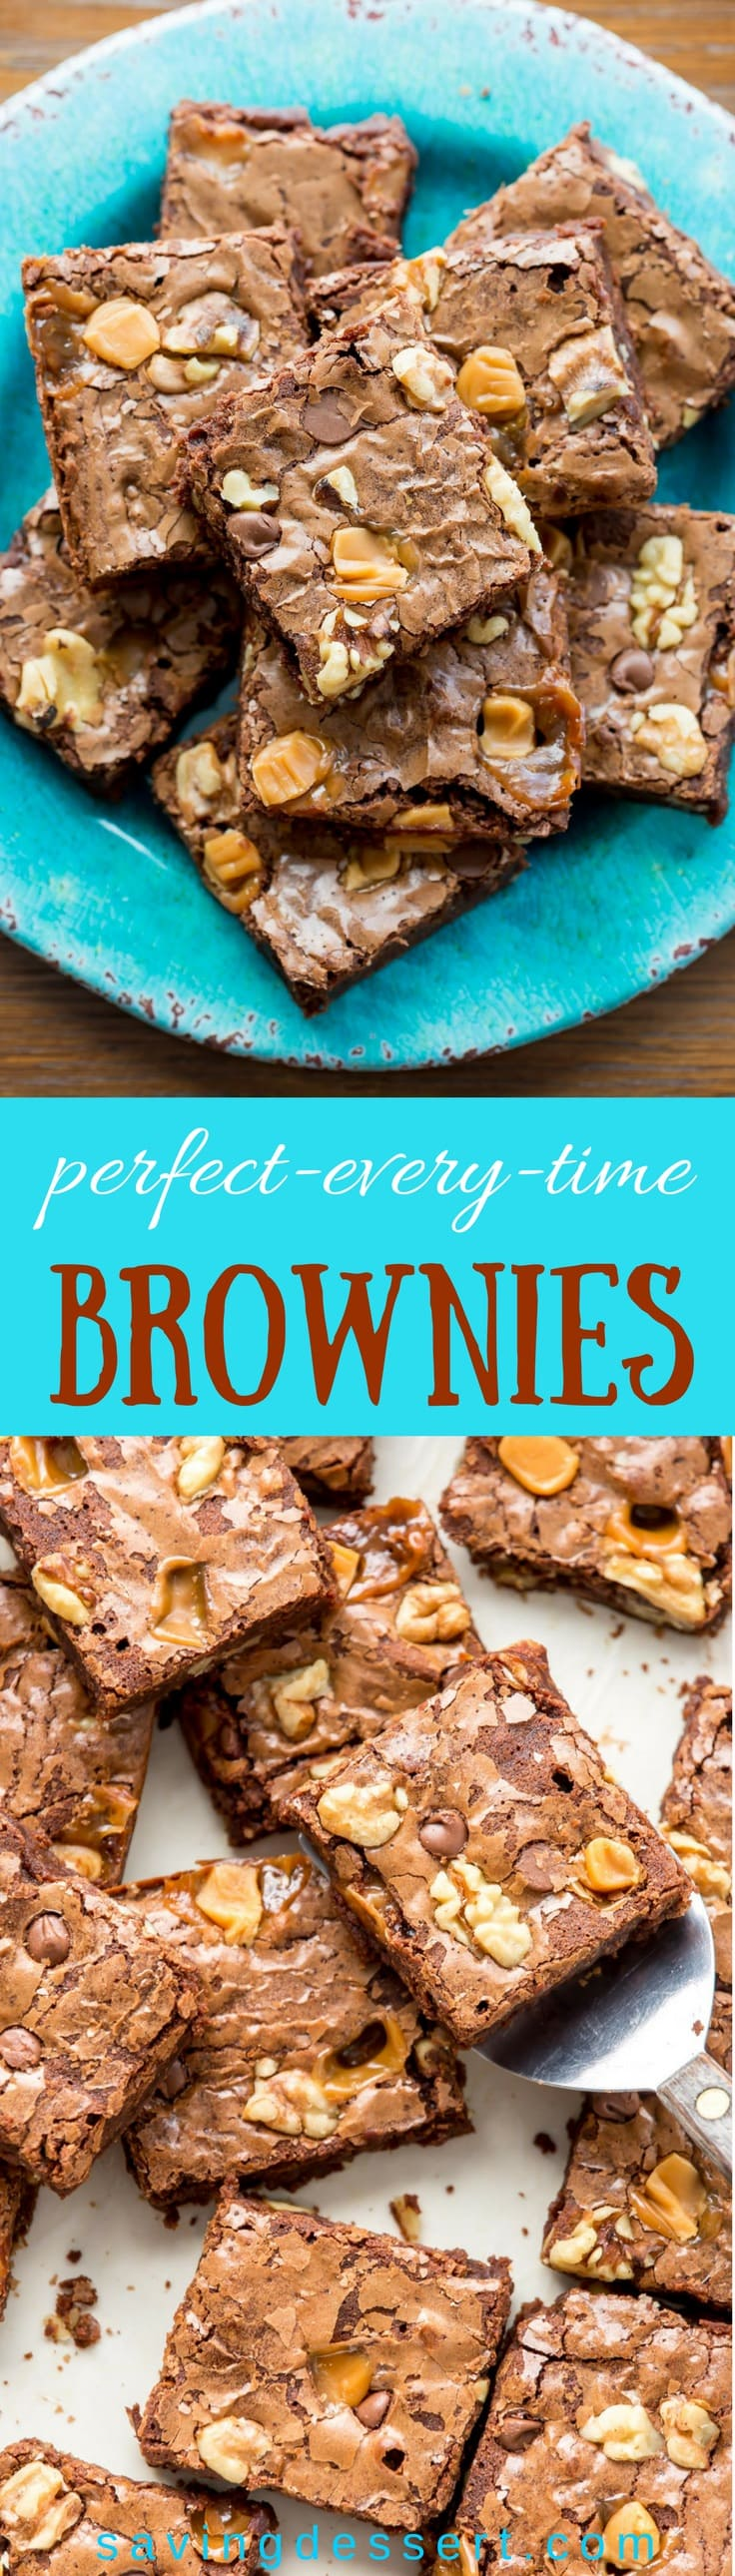 Perfect-Every-Time Brownies from scratch - an easy, rich, fudgy brownie that's perfect served warm from the oven with a scoop of ice cream or tucked in a lunchbox for a wonderful treat! #savingroomfordessert #brownies #easybrownies #homemadebrownies #browniesfromscratch #dessert